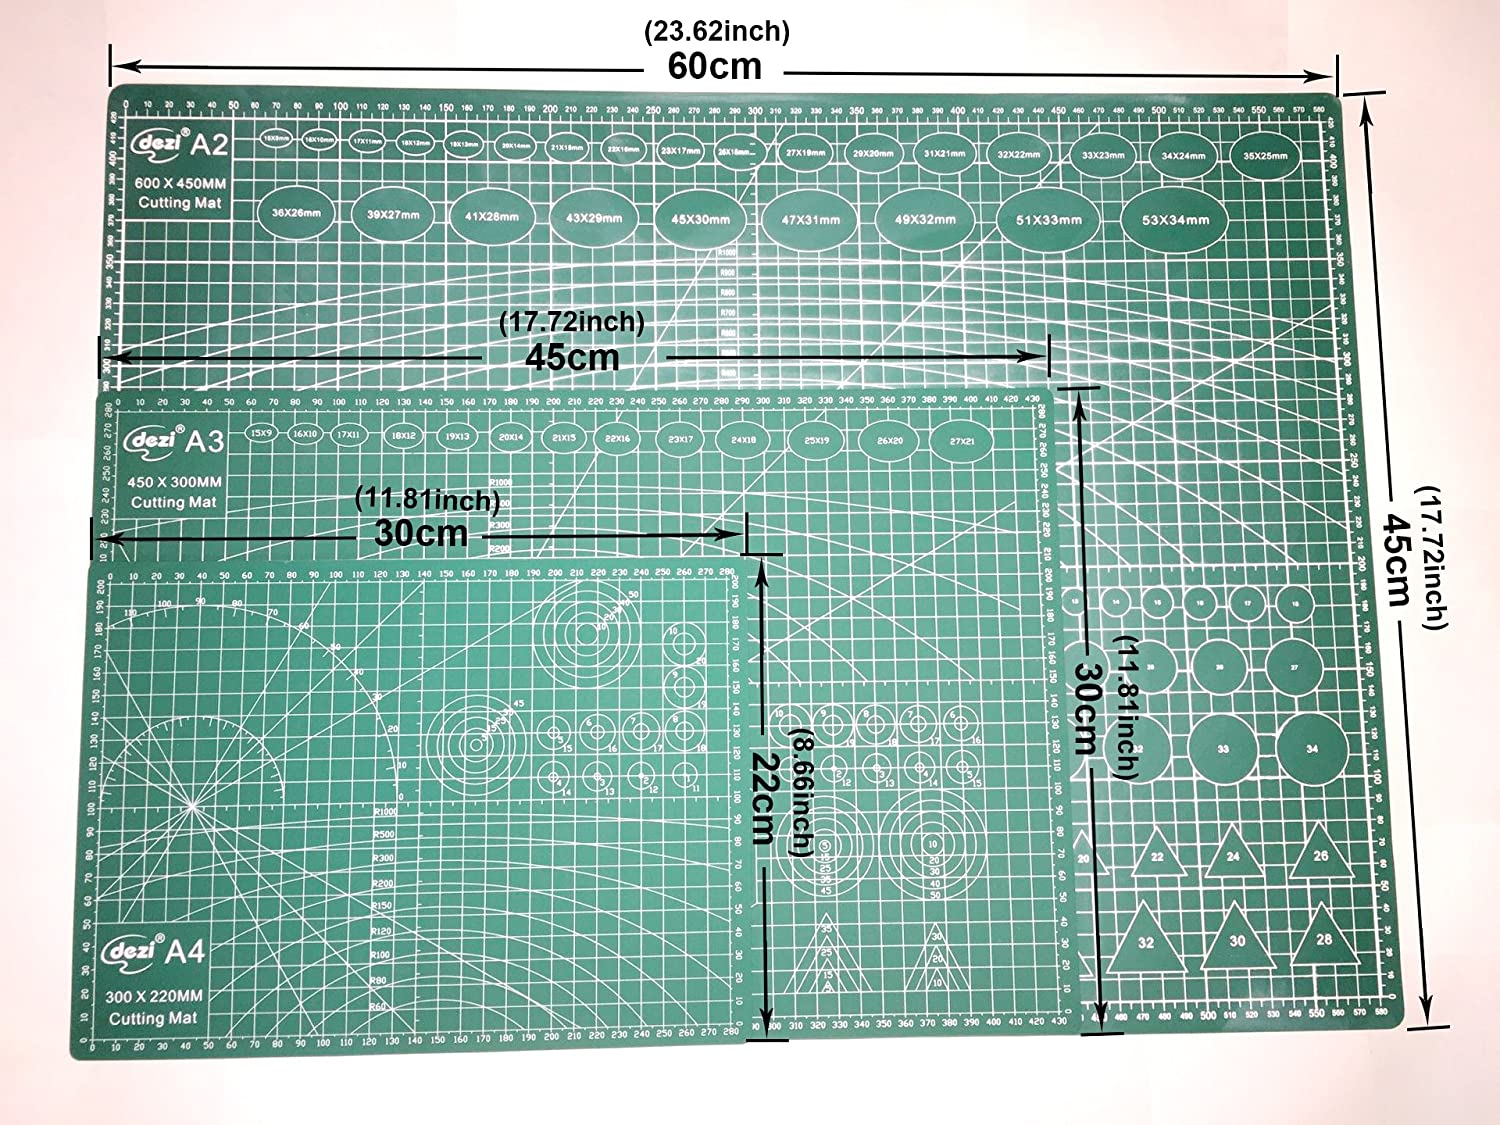 Amazon.com: A99 Cutting Mat A2 / A3 / A4 Board (A2 - 60 cm x 45 cm)